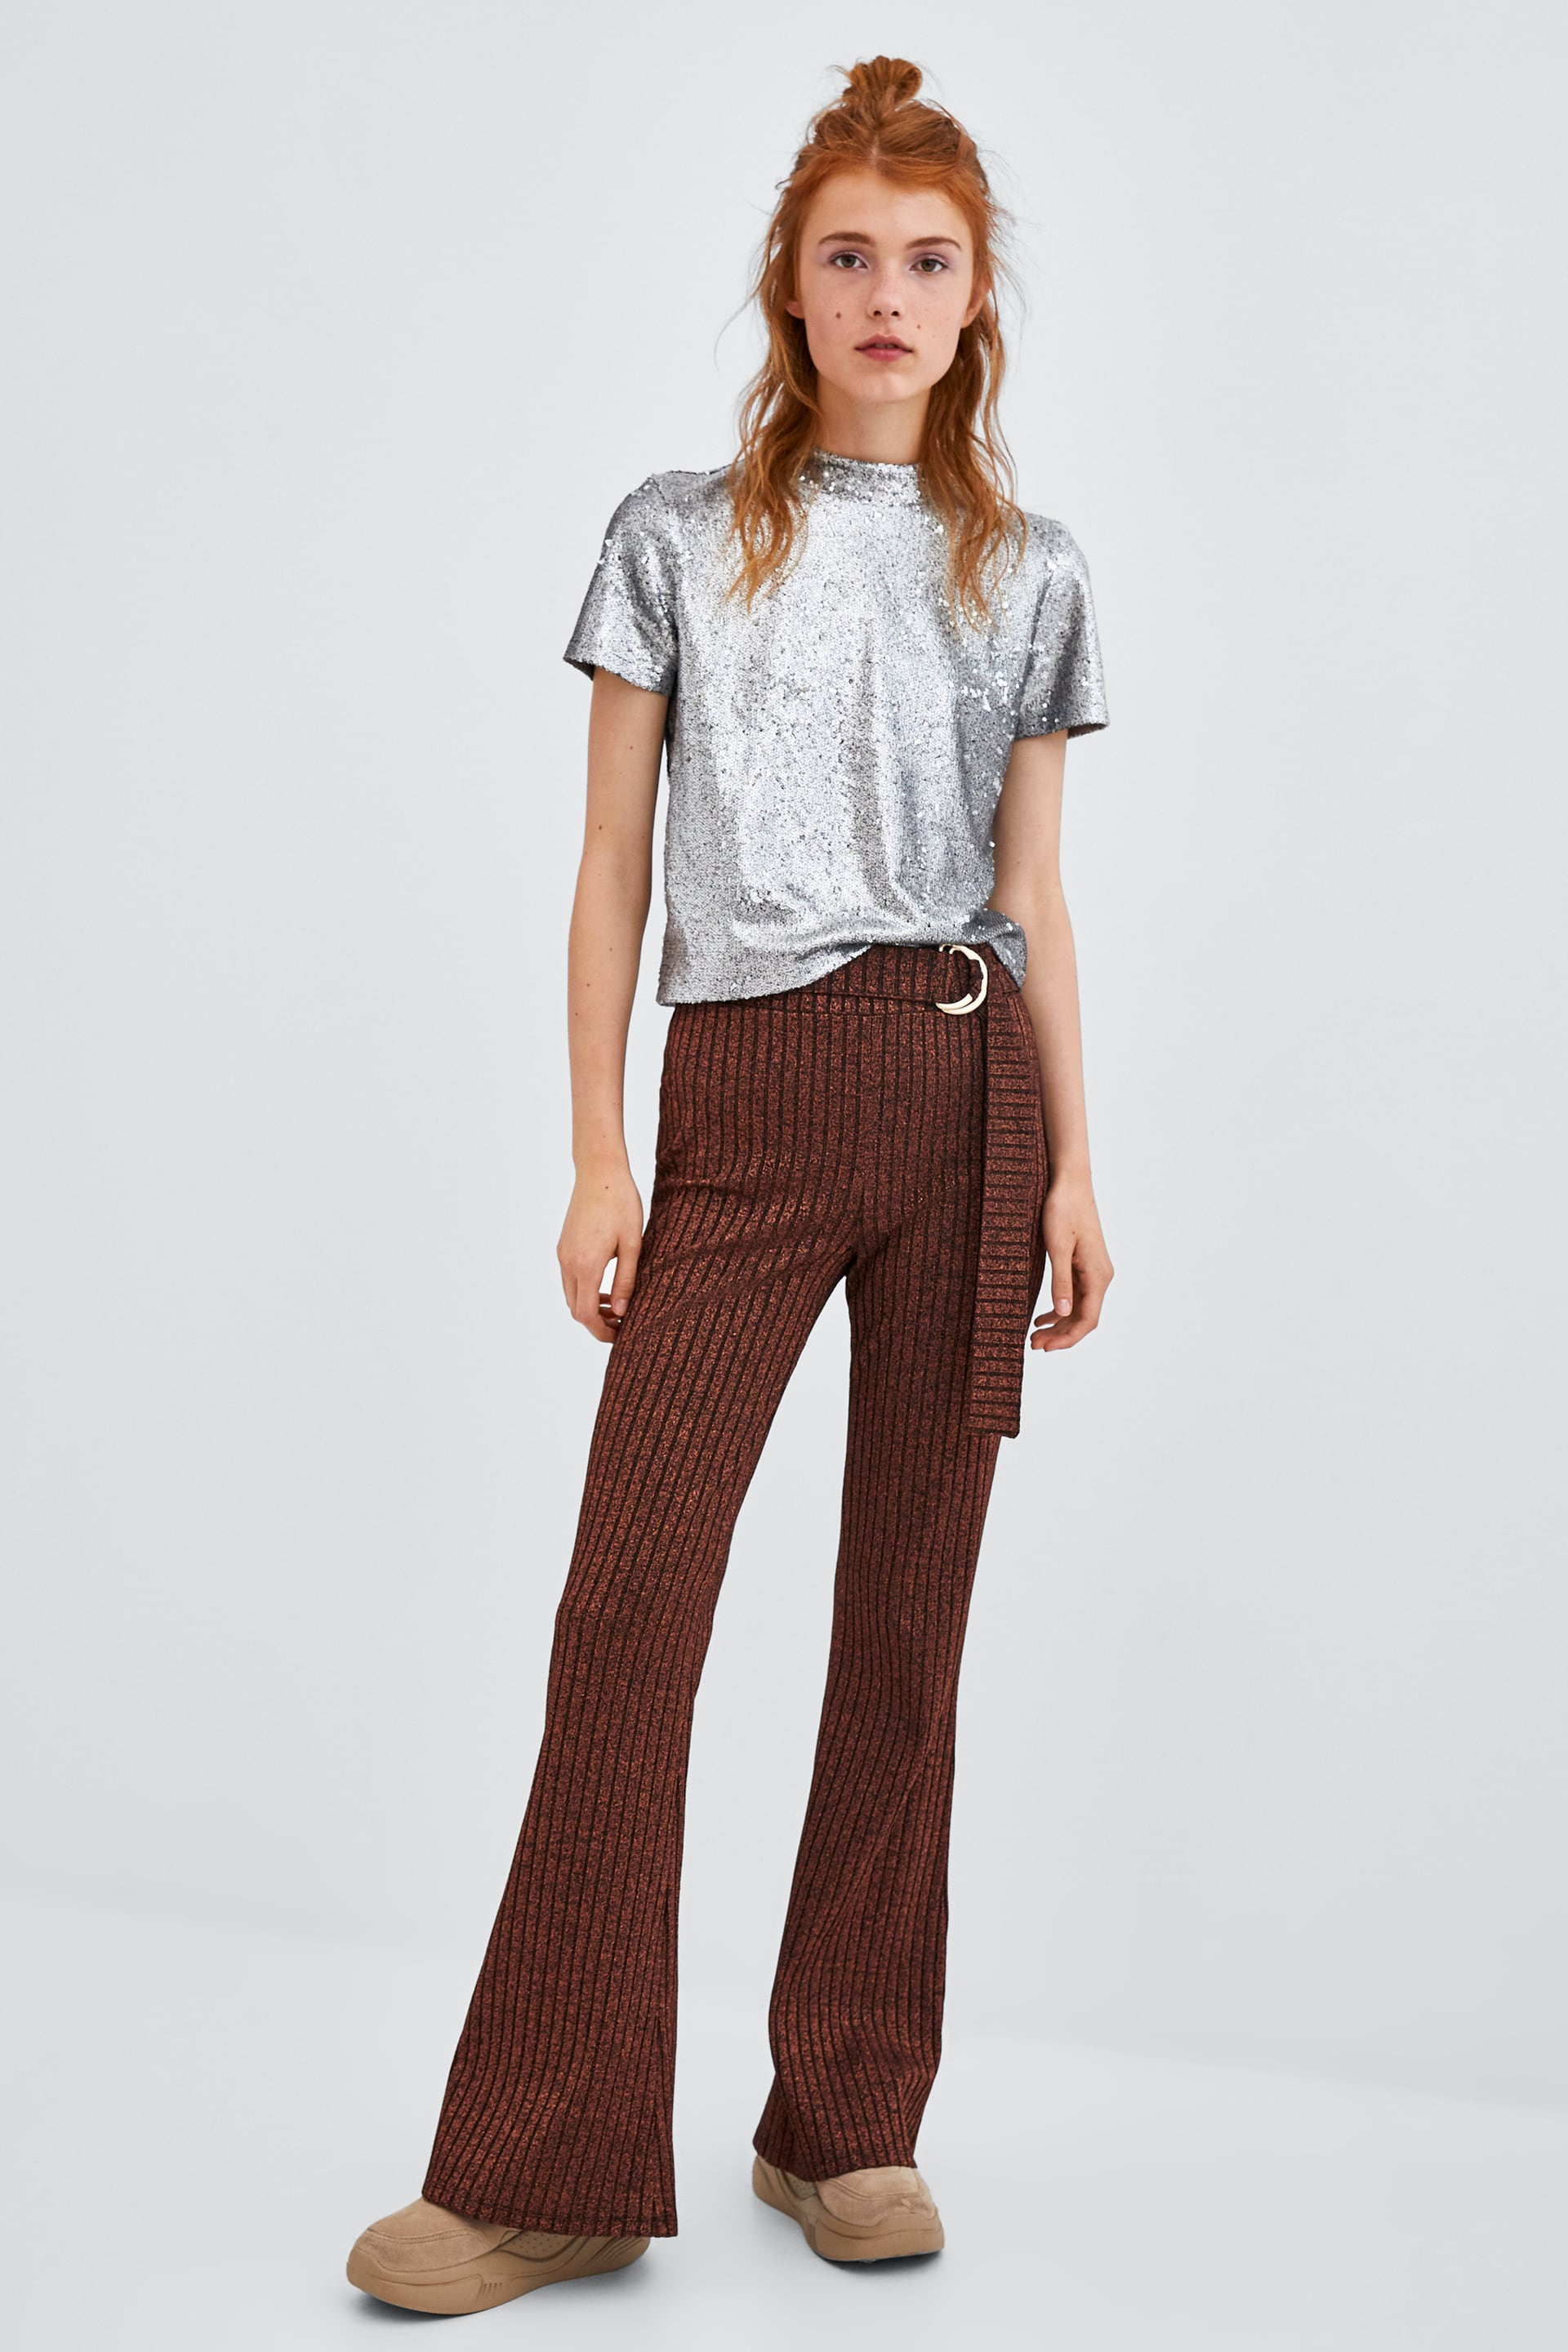 Shiny Buckled Pants  View All Pants Trf by Zara